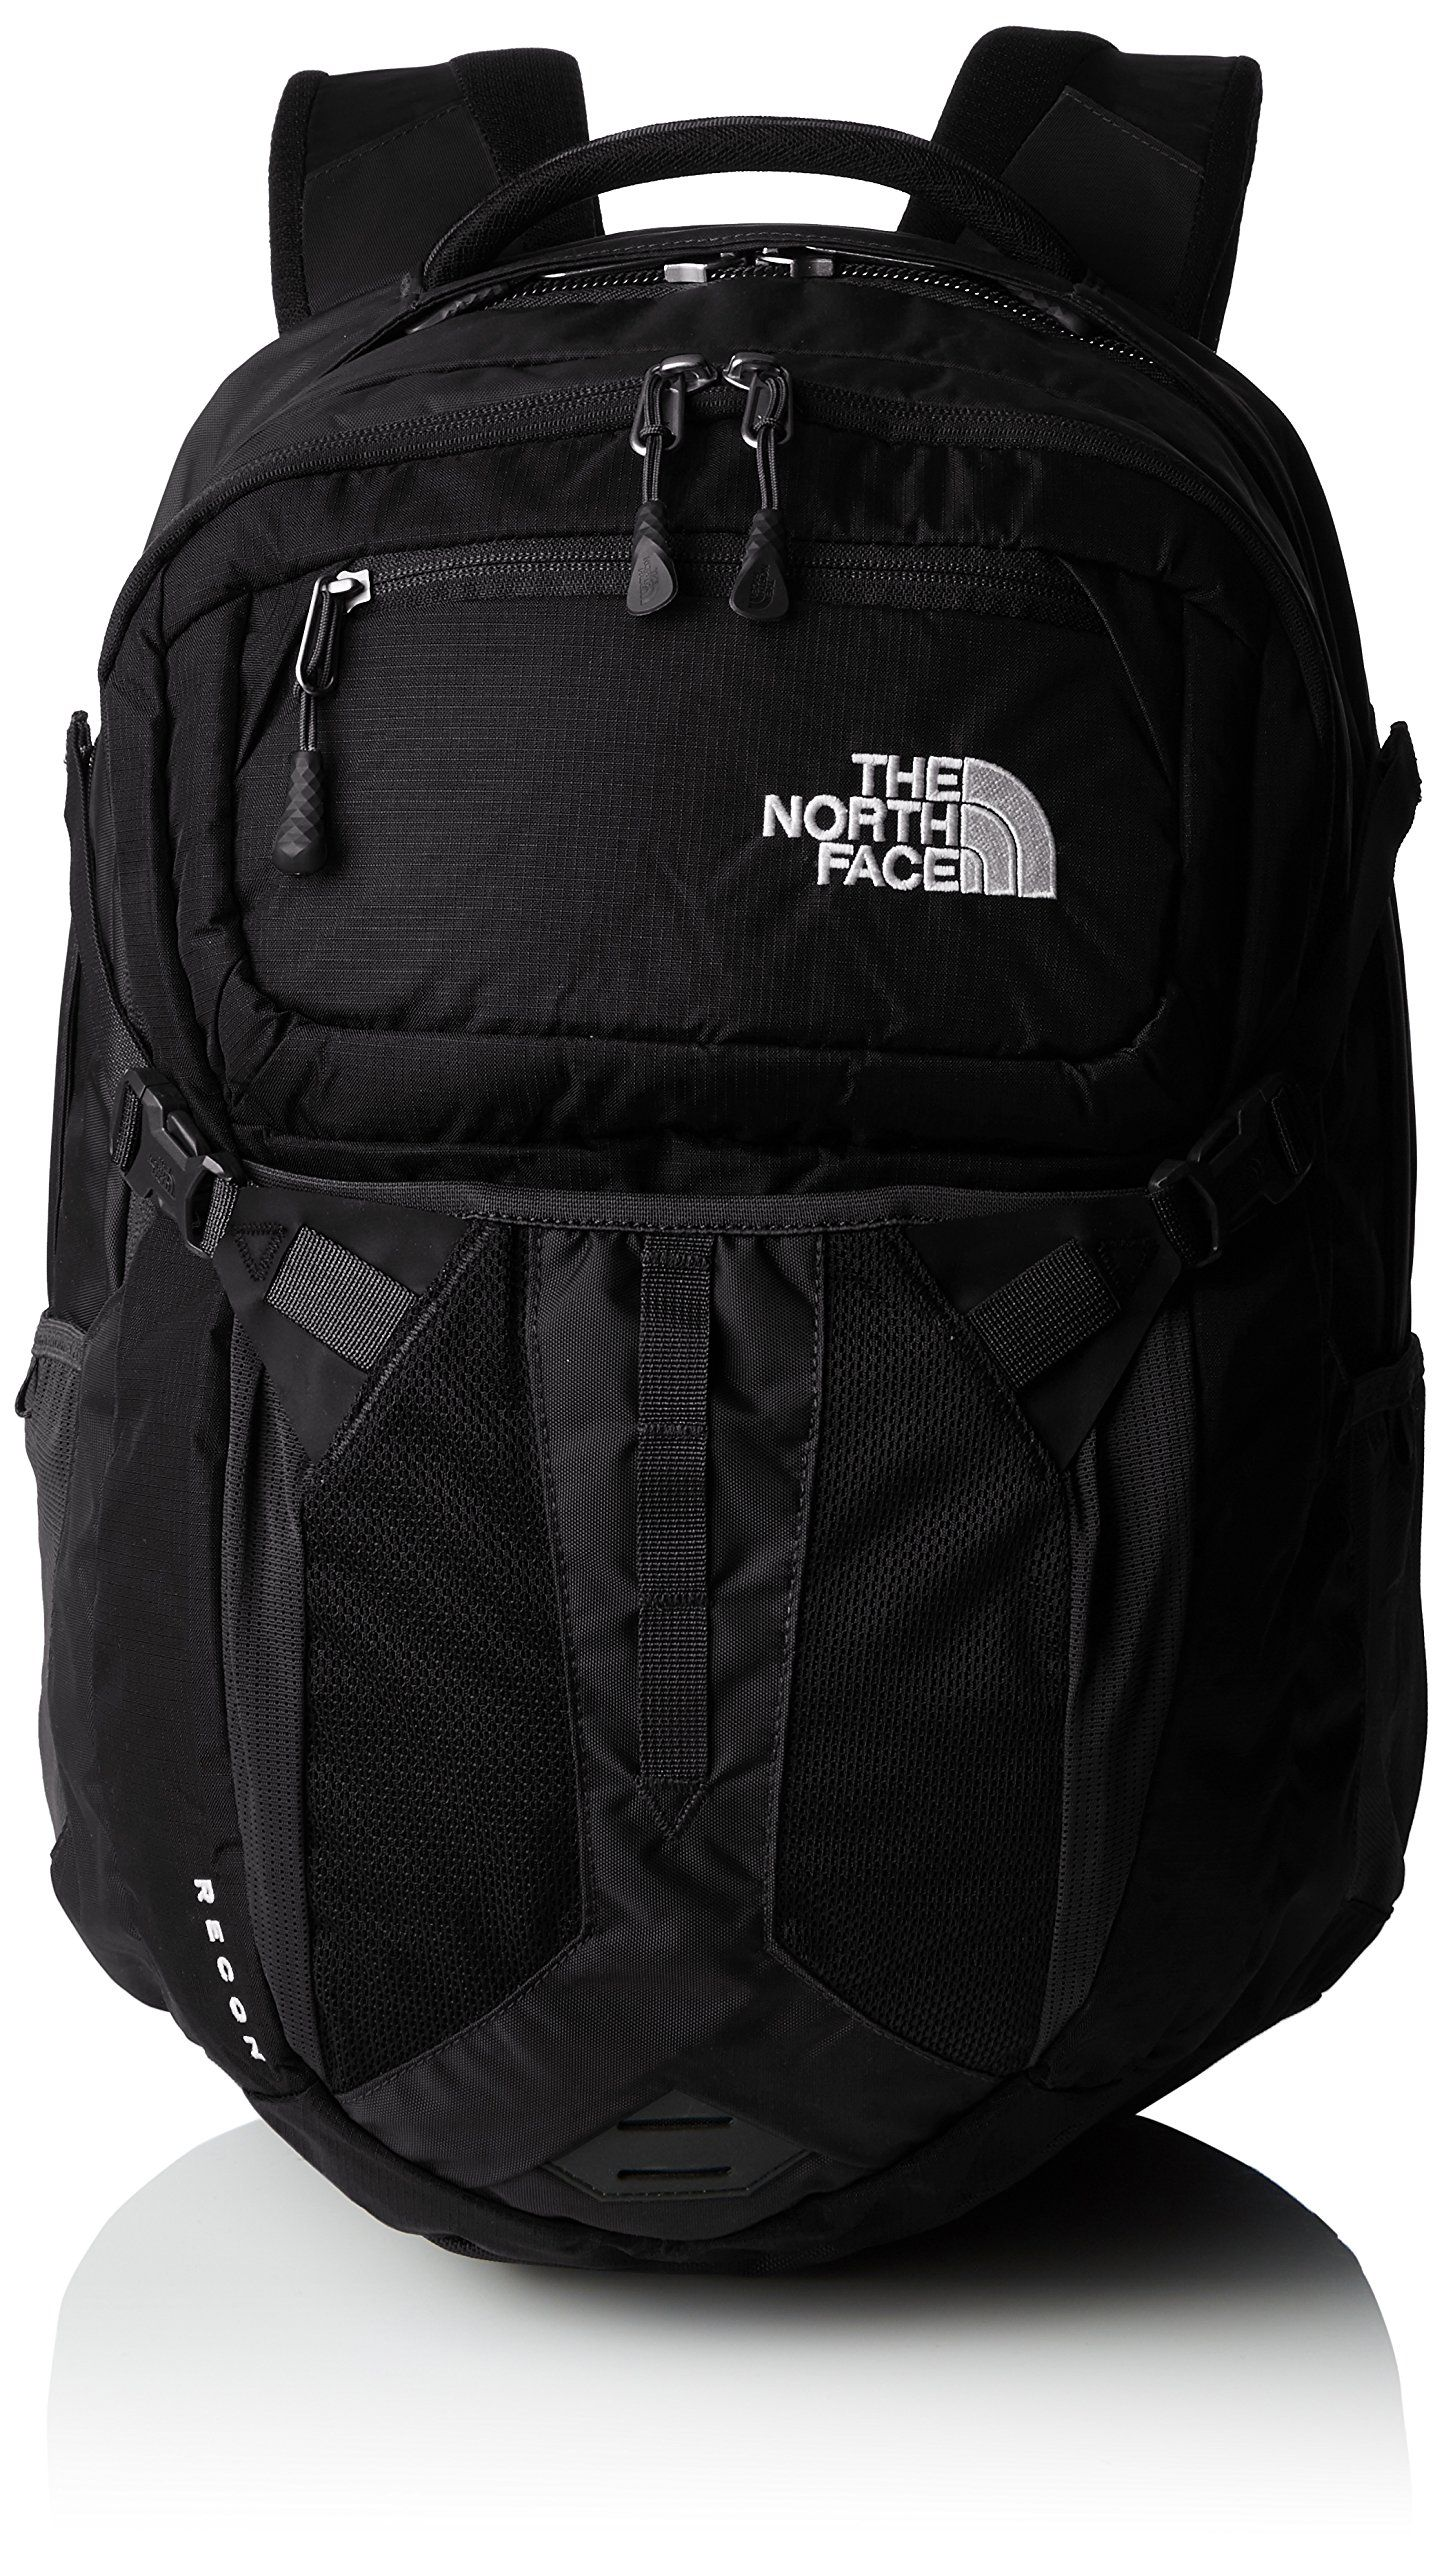 66594d6c0 The North Face Recon Backpack - Men's Coffe Brown Ripstop | Backpack ...